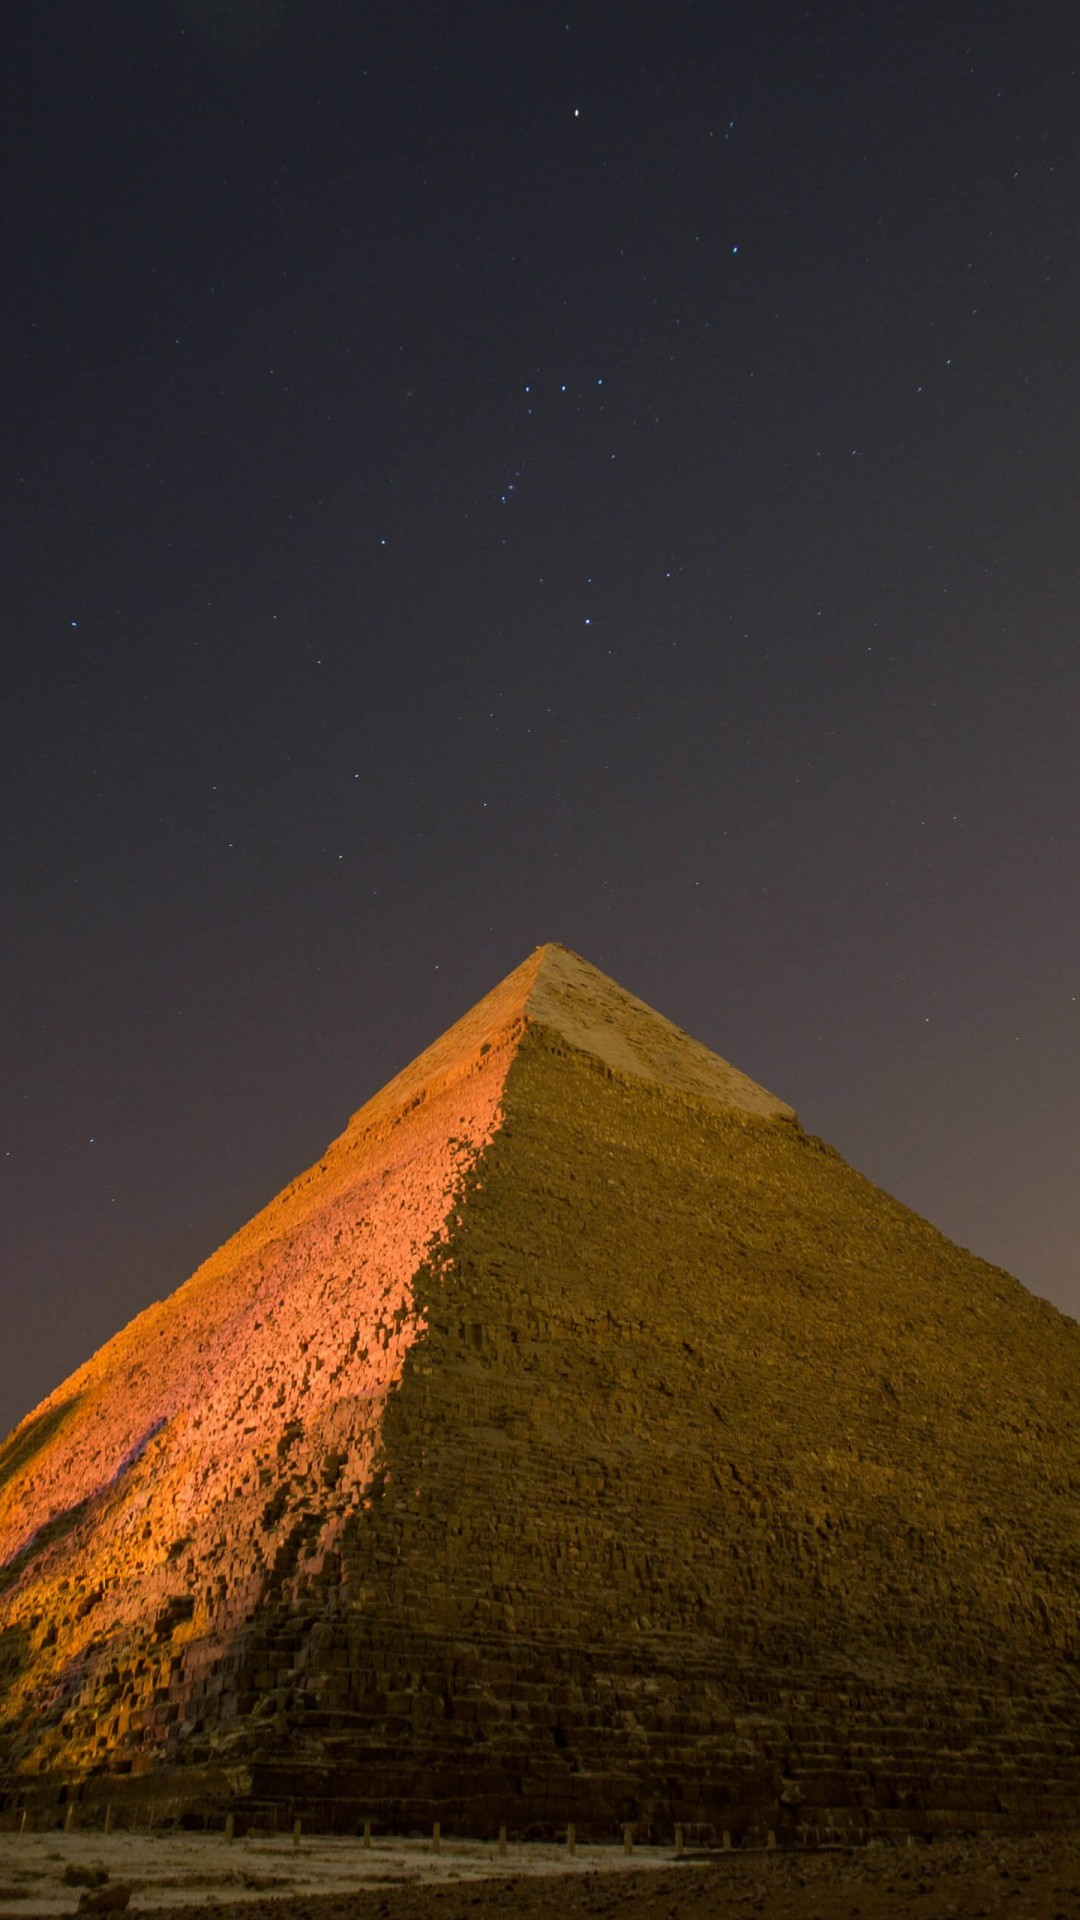 Pyramid By Night Hd Wallpaper For Moto X Screens